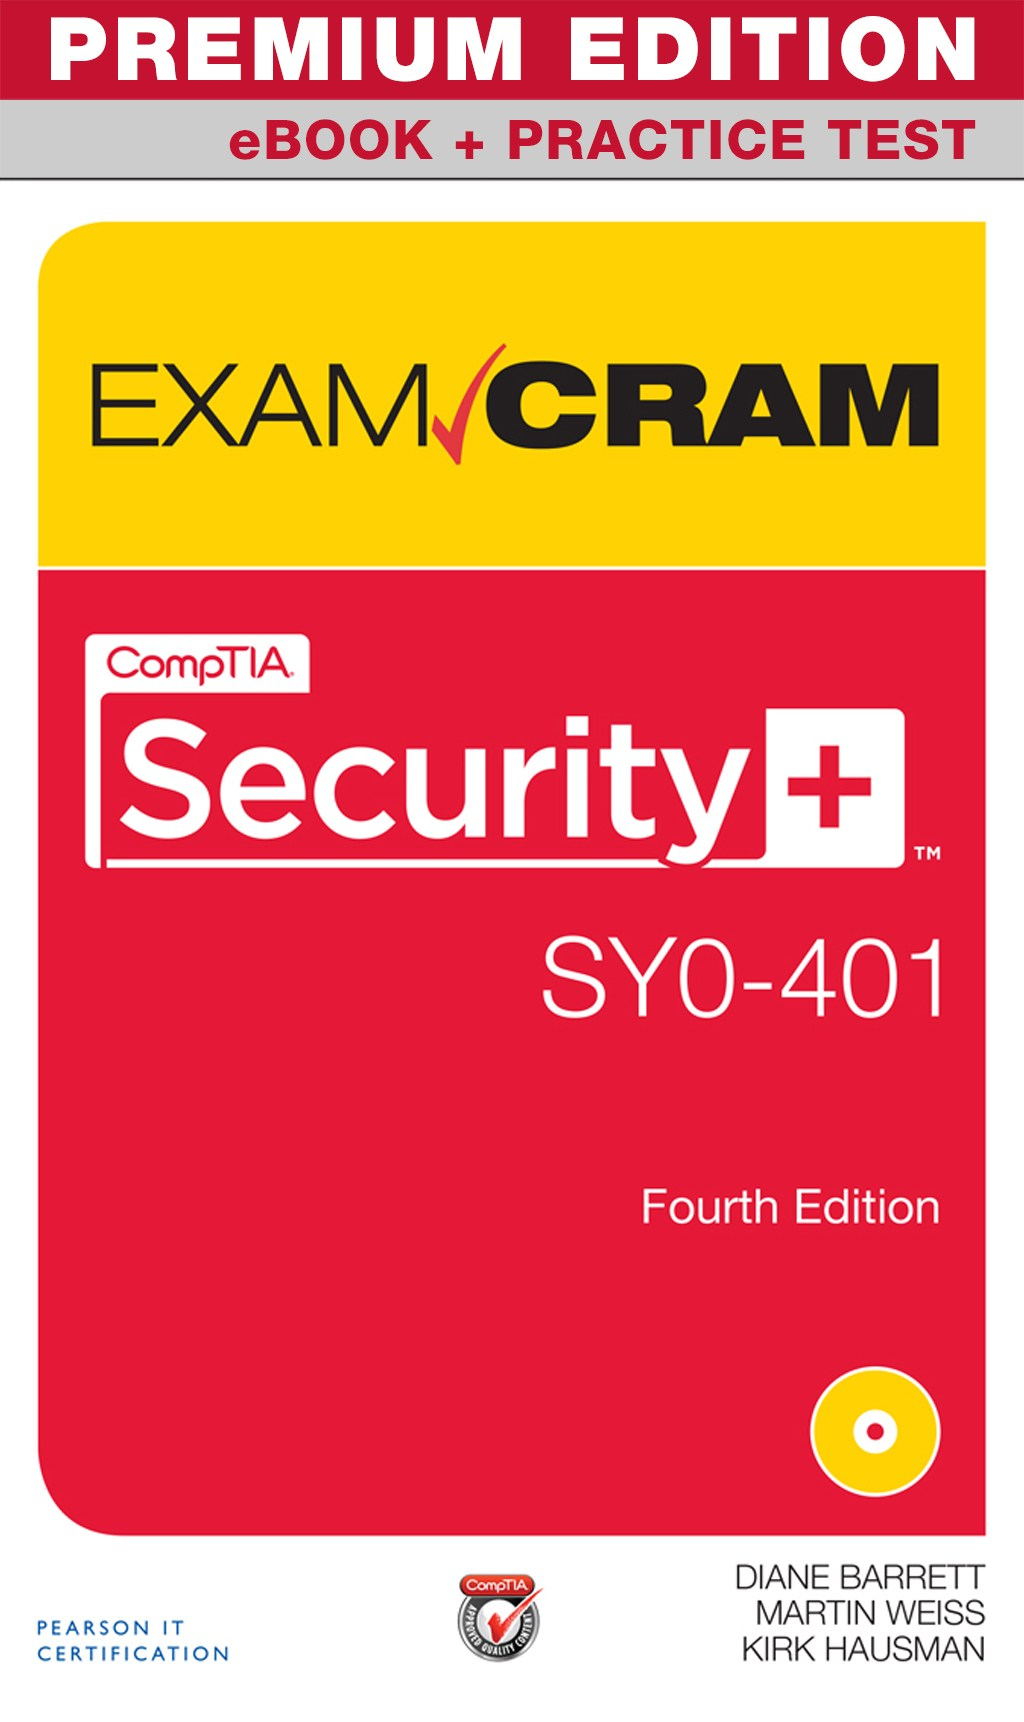 CompTIA Security+ SY0-401 Exam Cram Premium Edition and Practice Test, 4th Edition